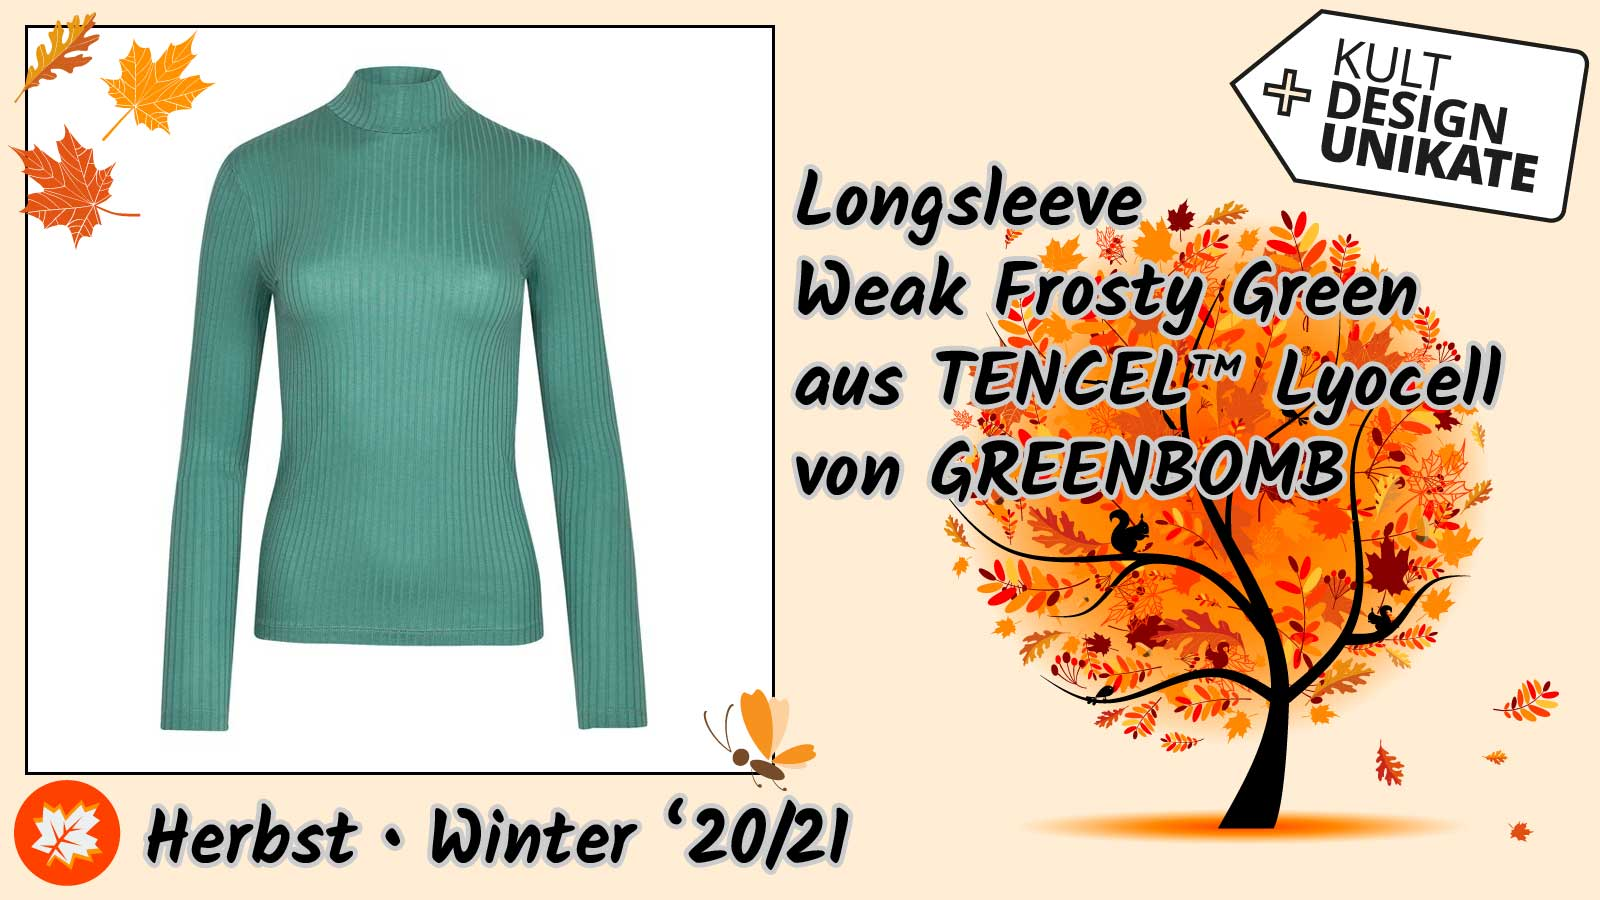 greenbomb-Longsleeve-Weak-Frosty-Green